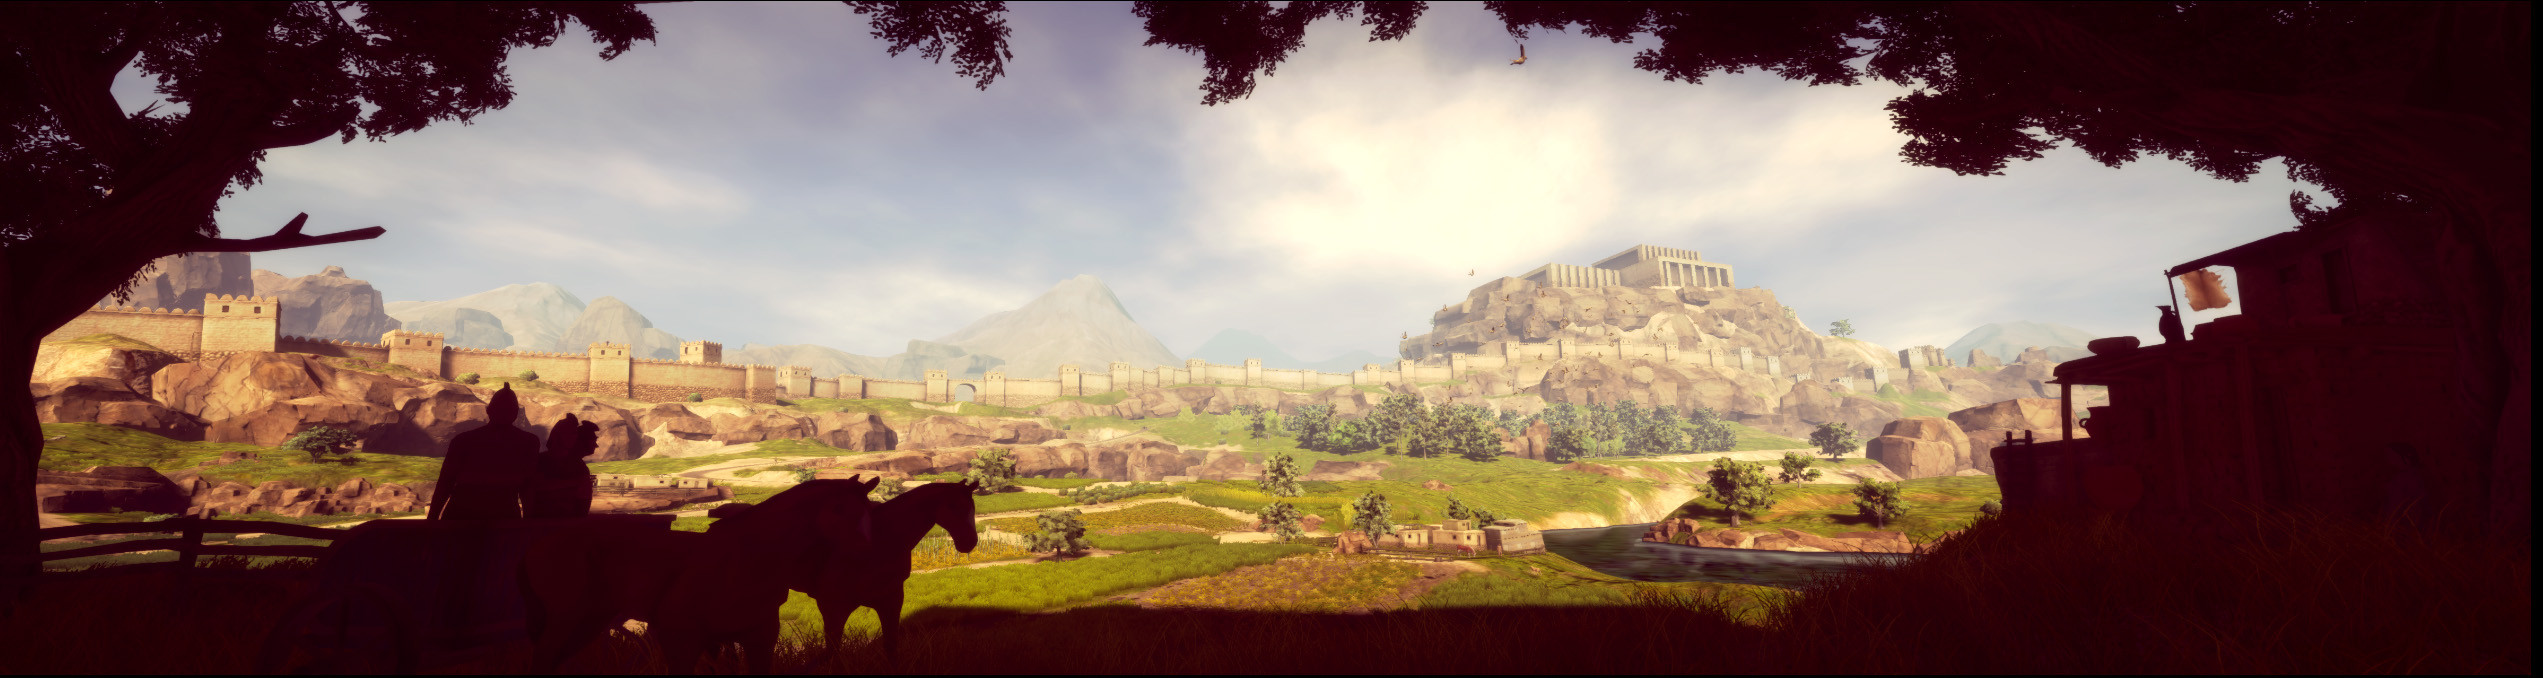 Hittite Village, screenshot from midday